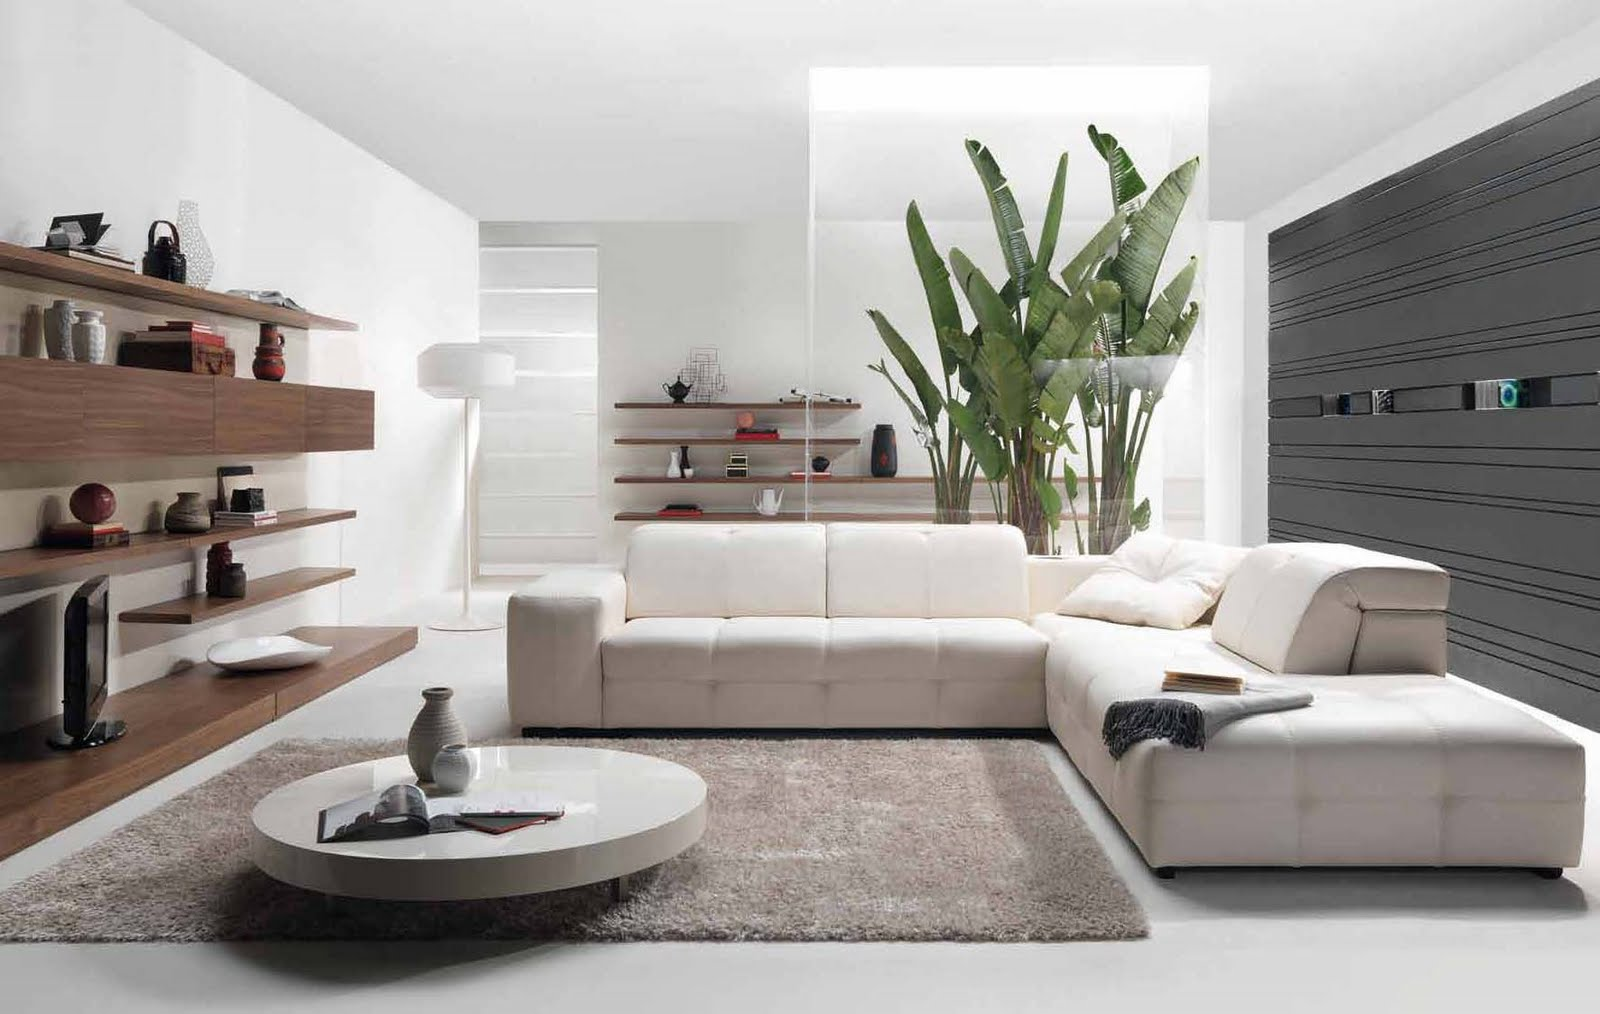 Future house design modern living room interior design for Interior designs pictures